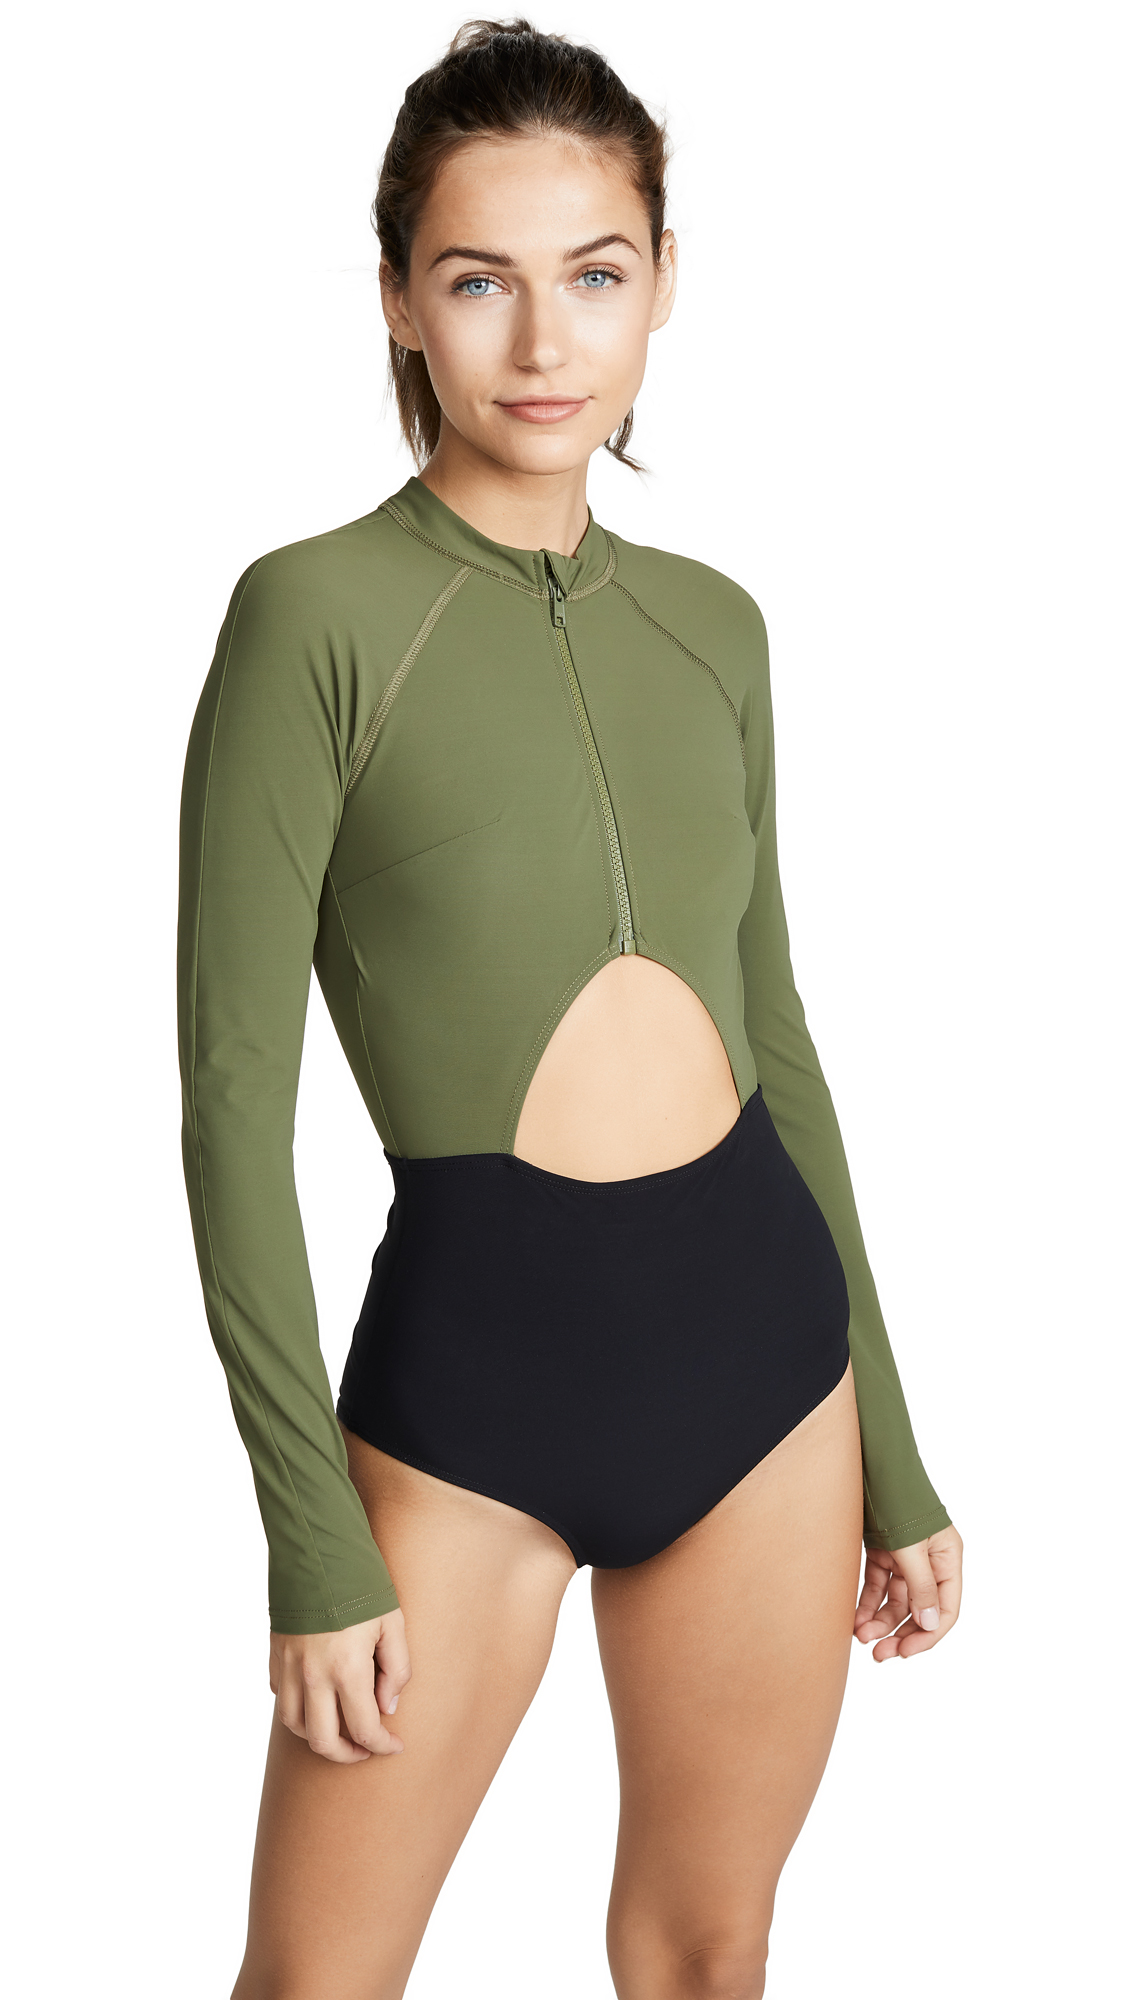 FLAGPOLE Kelly One Piece in Olive/Black